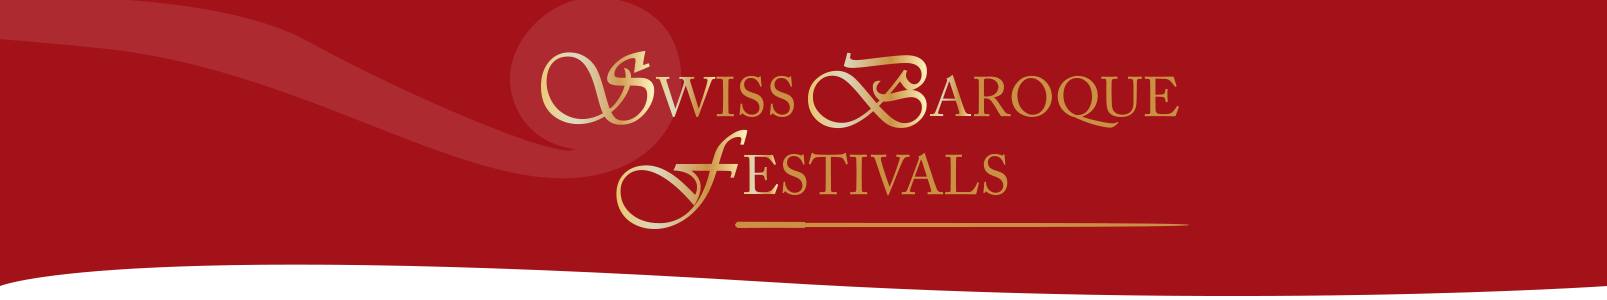 Swiss Baroque Festivals